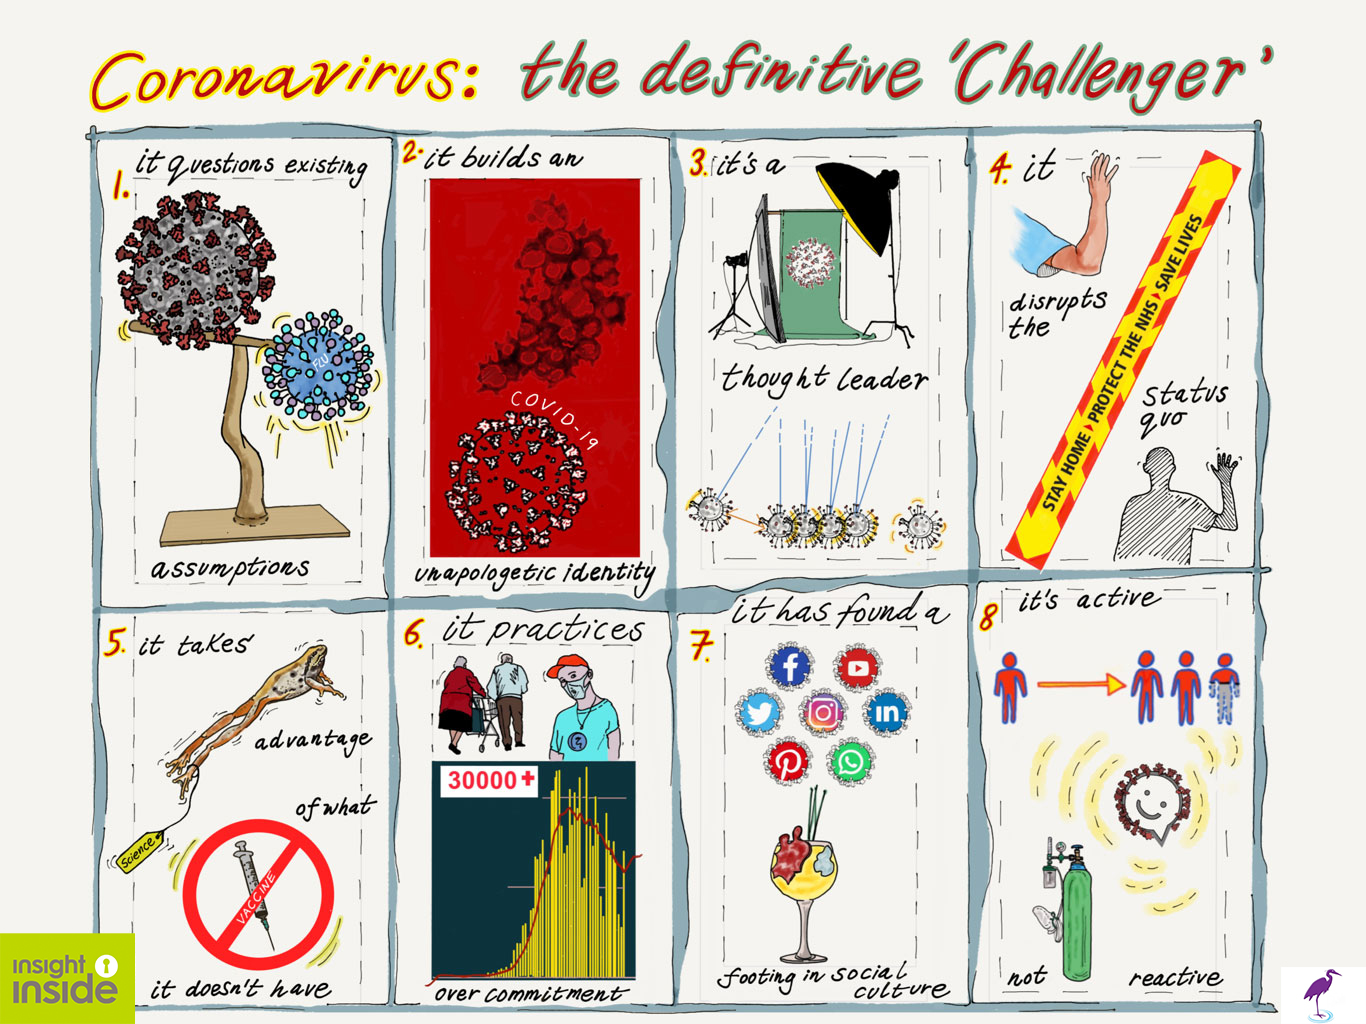 Coronavirus The definitive 'Challenger'